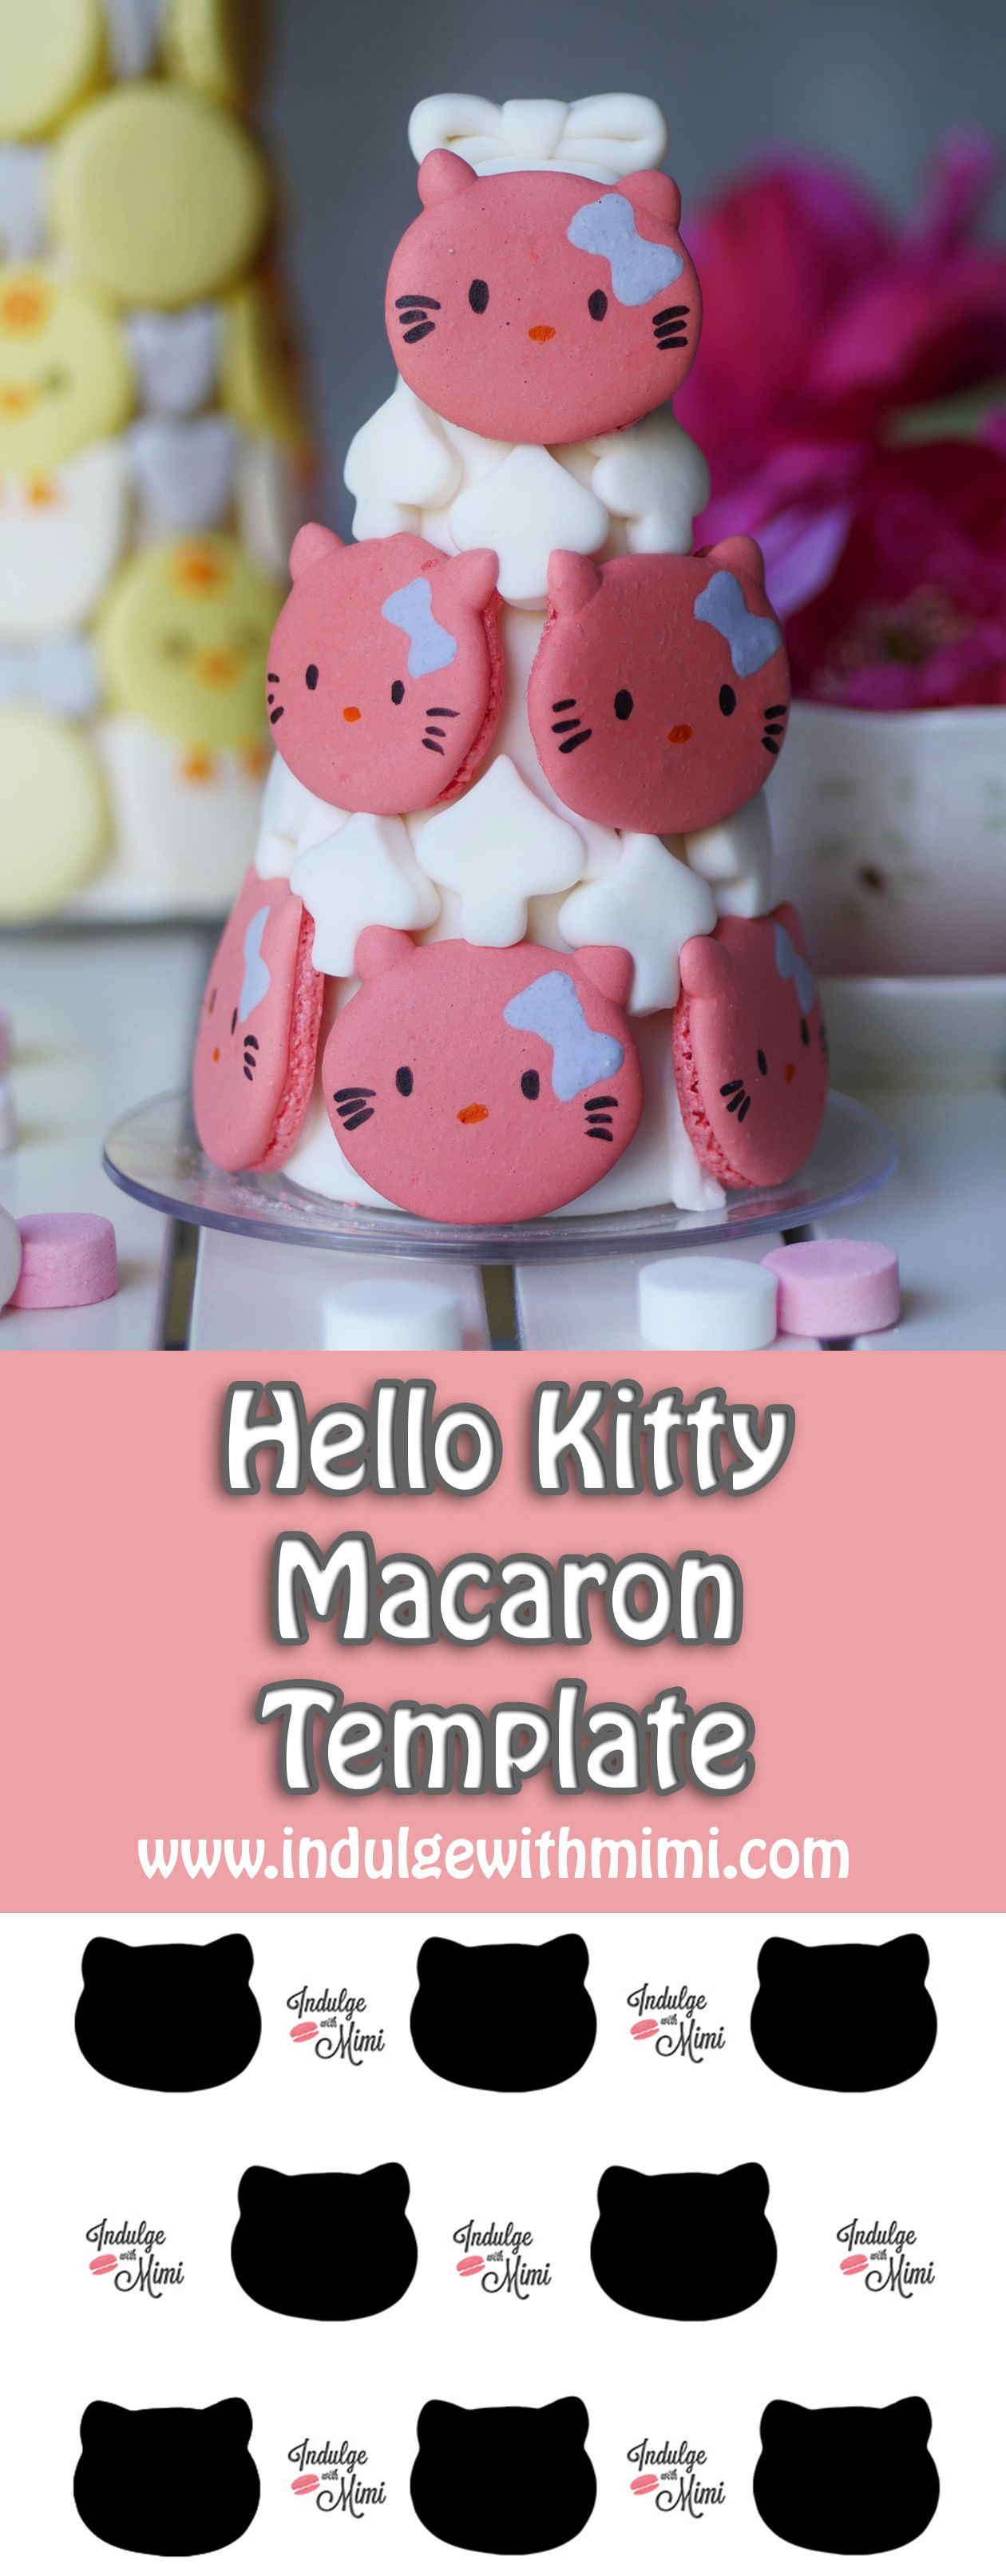 Hello Kitty Macaron Template  Macaroons    Hello Kitty